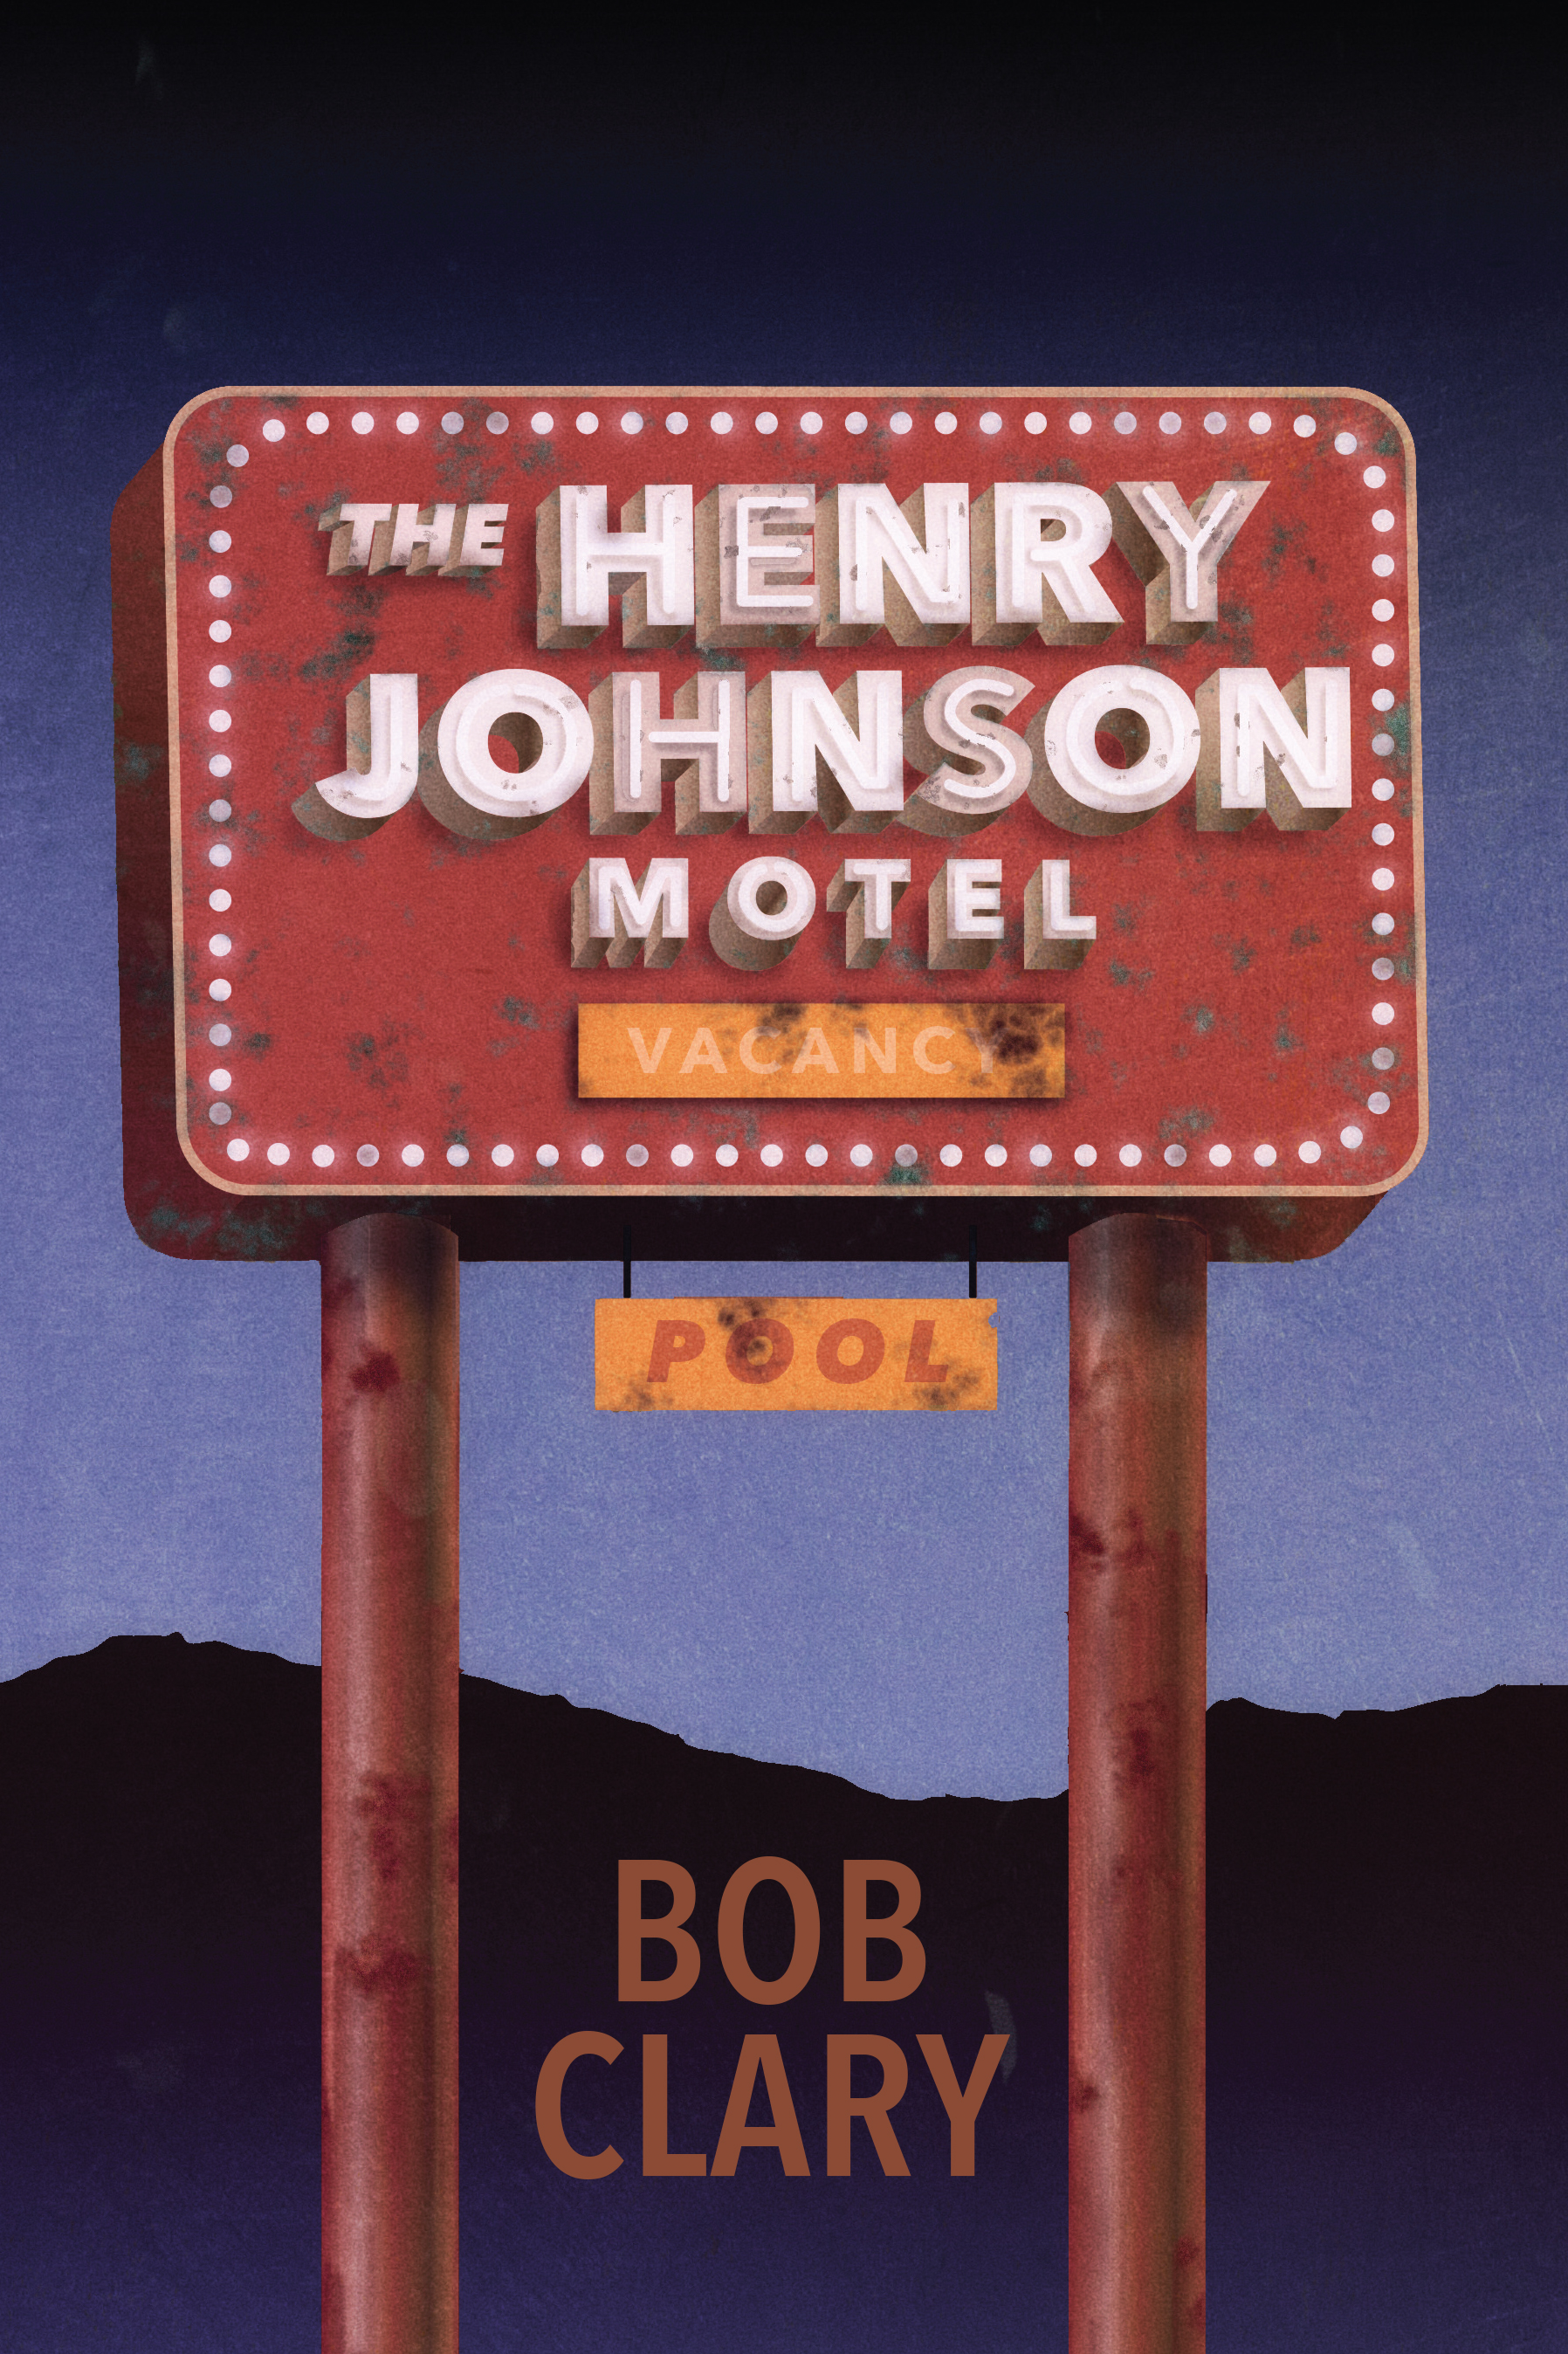 The Henry Johnson Motel